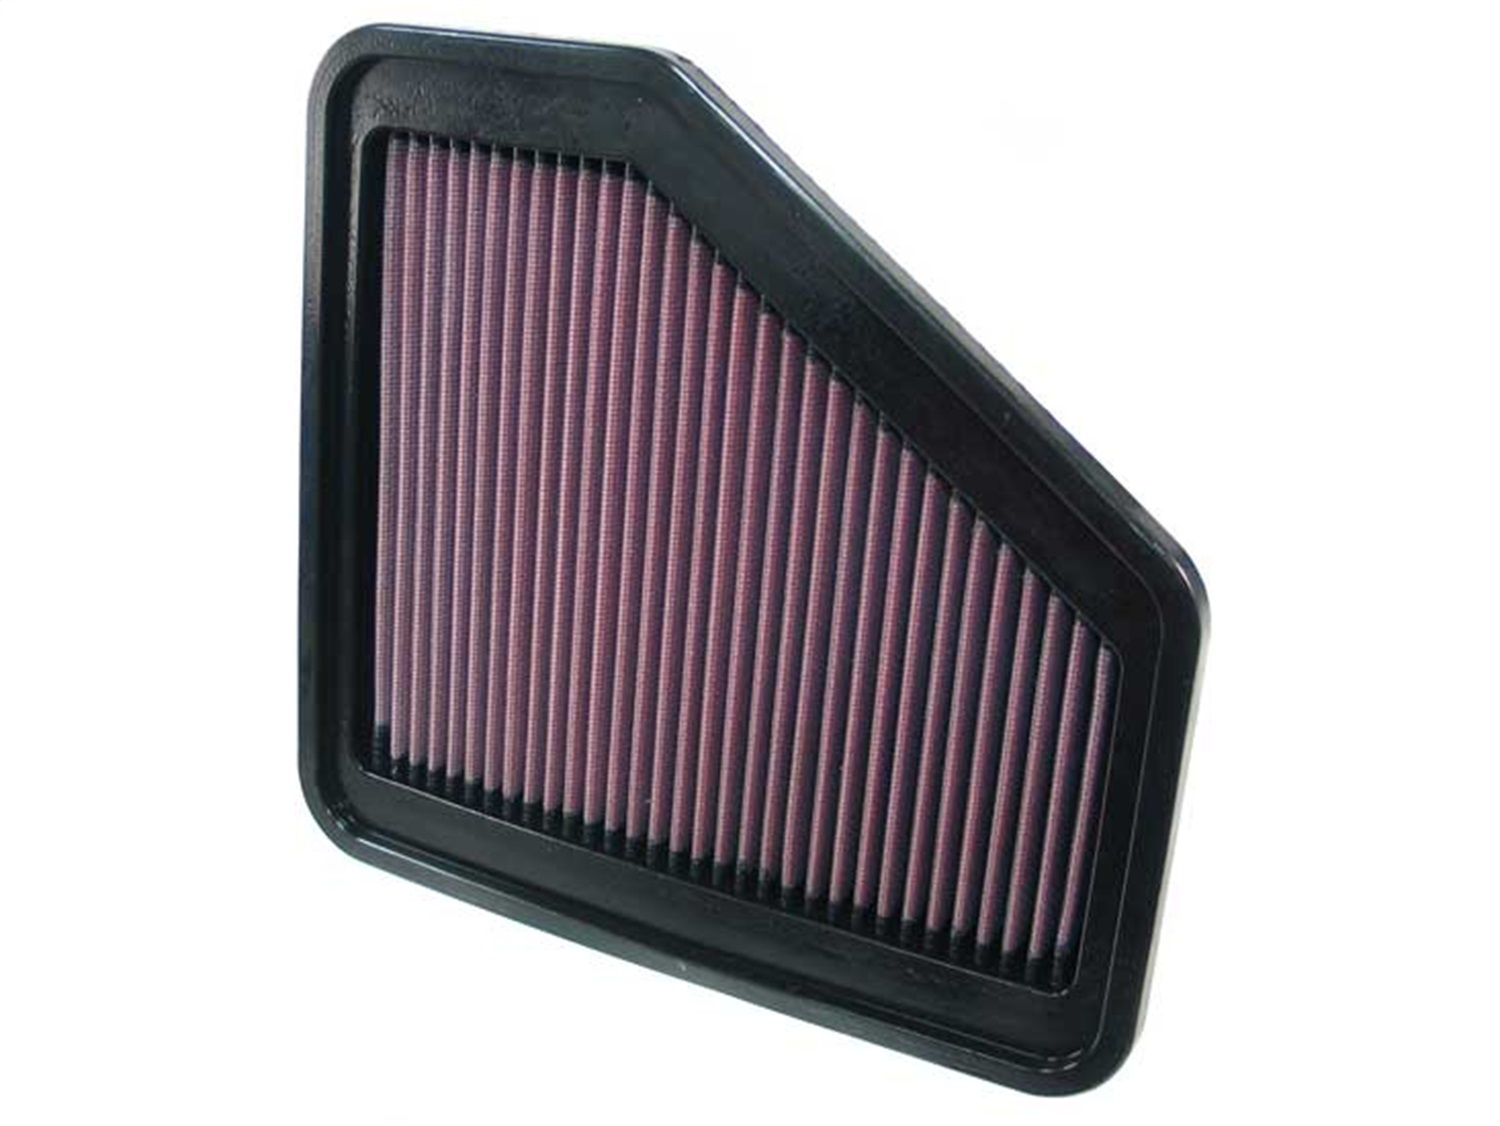 K&N Filters 33-2355 Air Filter Fits 06-14 Evora RAV4 33-2355